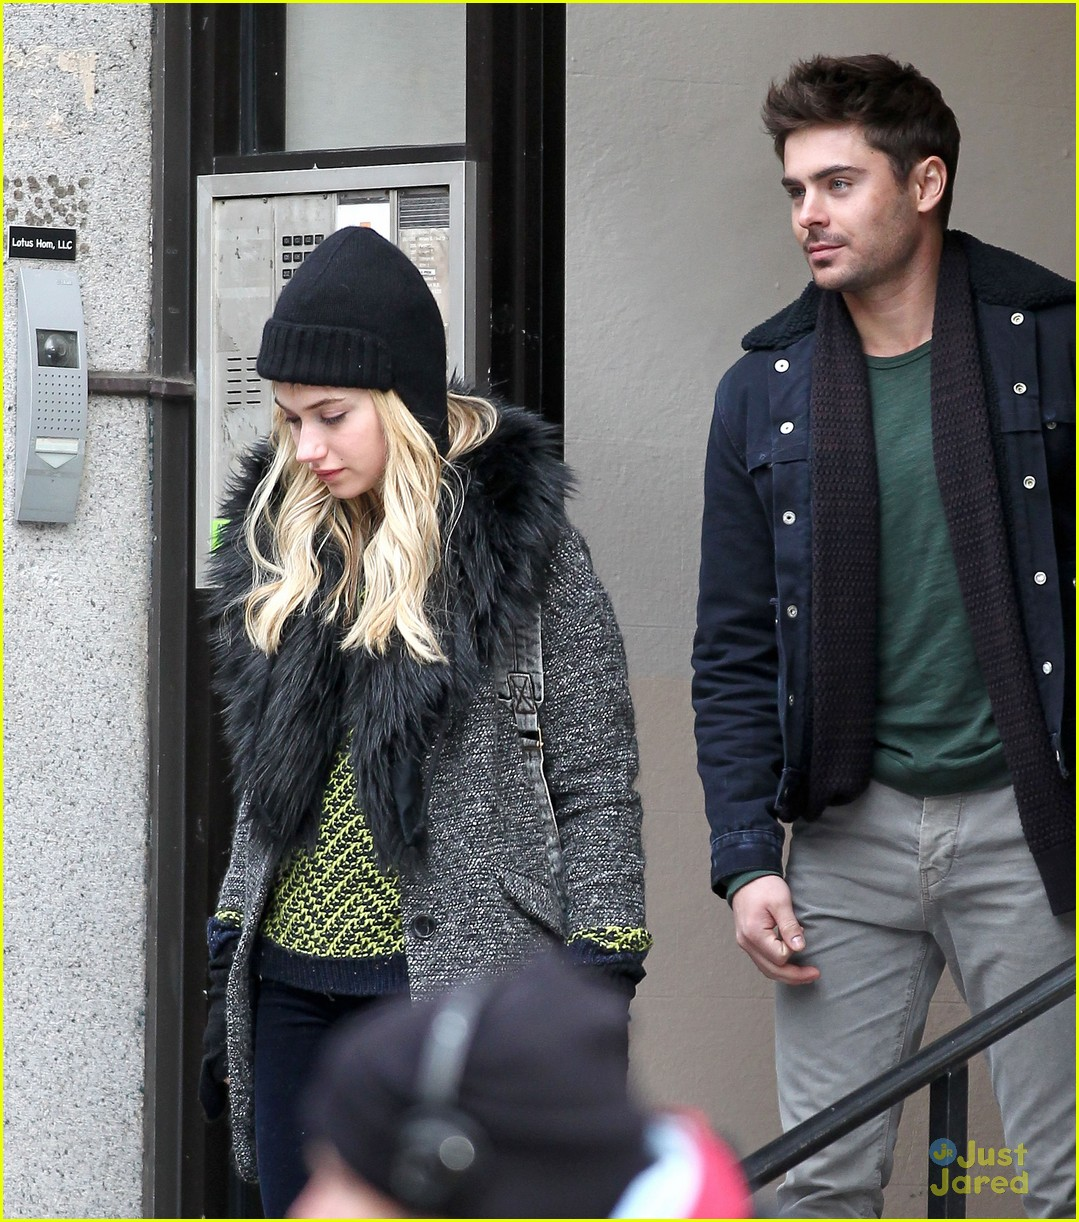 zac efron imogen poots dating cute meet 07